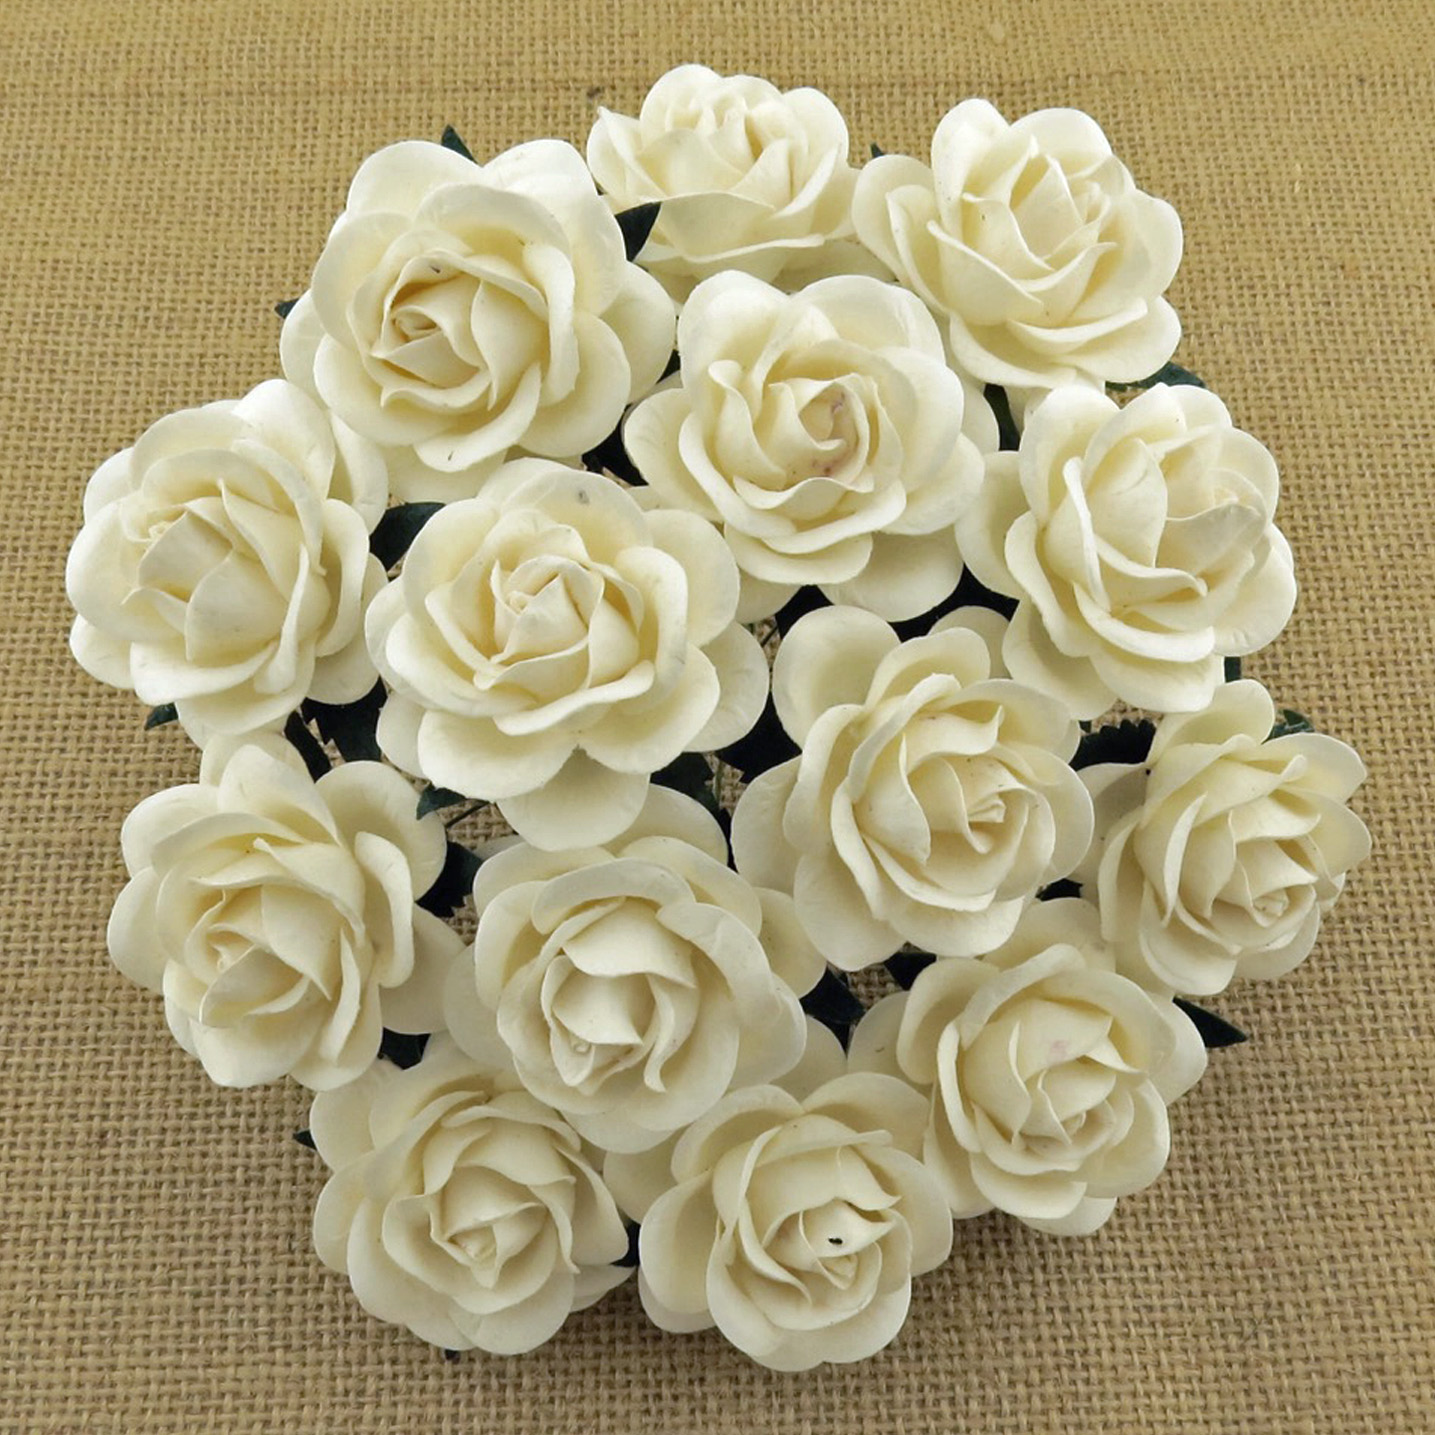 50 IVORY MULBERRY PAPER TRELLIS ROSES